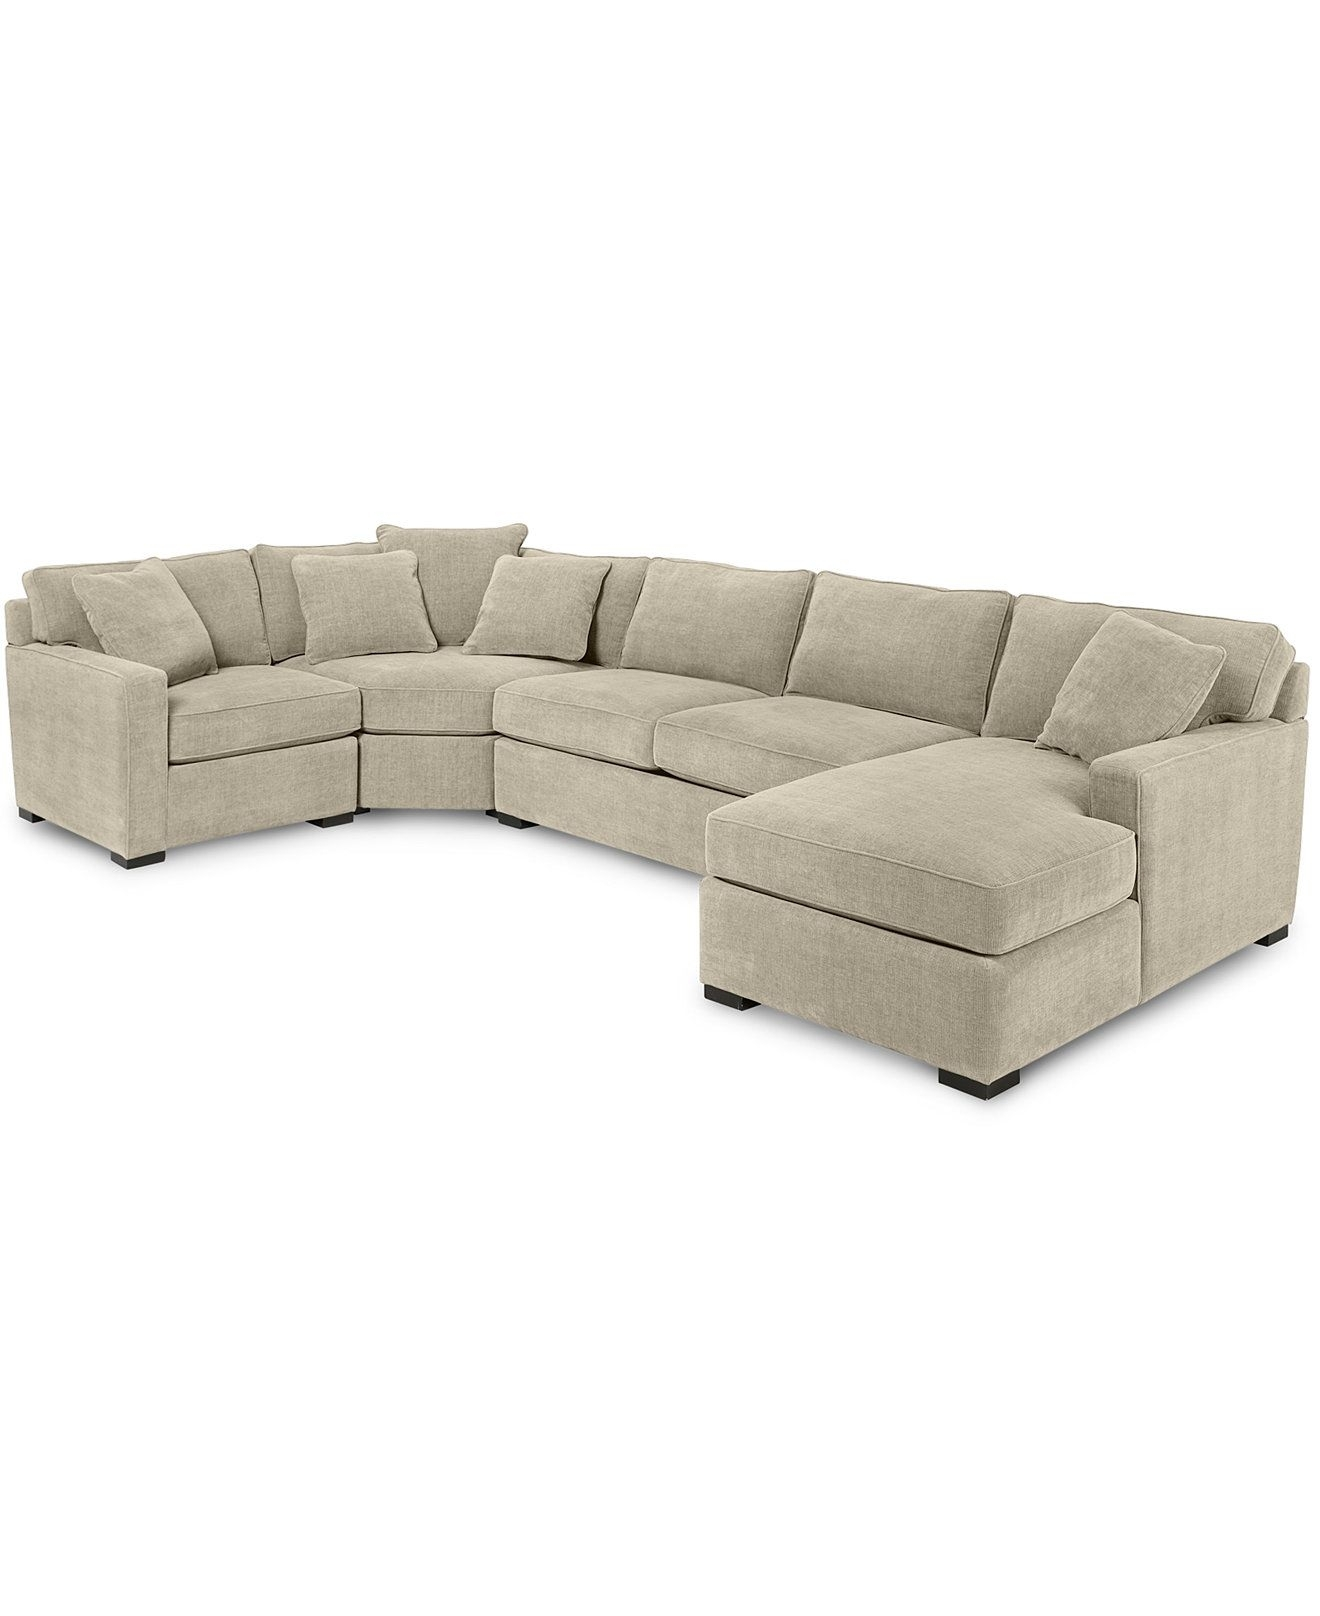 Radley 4-Piece Fabric Chaise Sectional Sofa, Created For Macy's within Norfolk Chocolate 6 Piece Sectionals With Laf Chaise (Image 23 of 30)